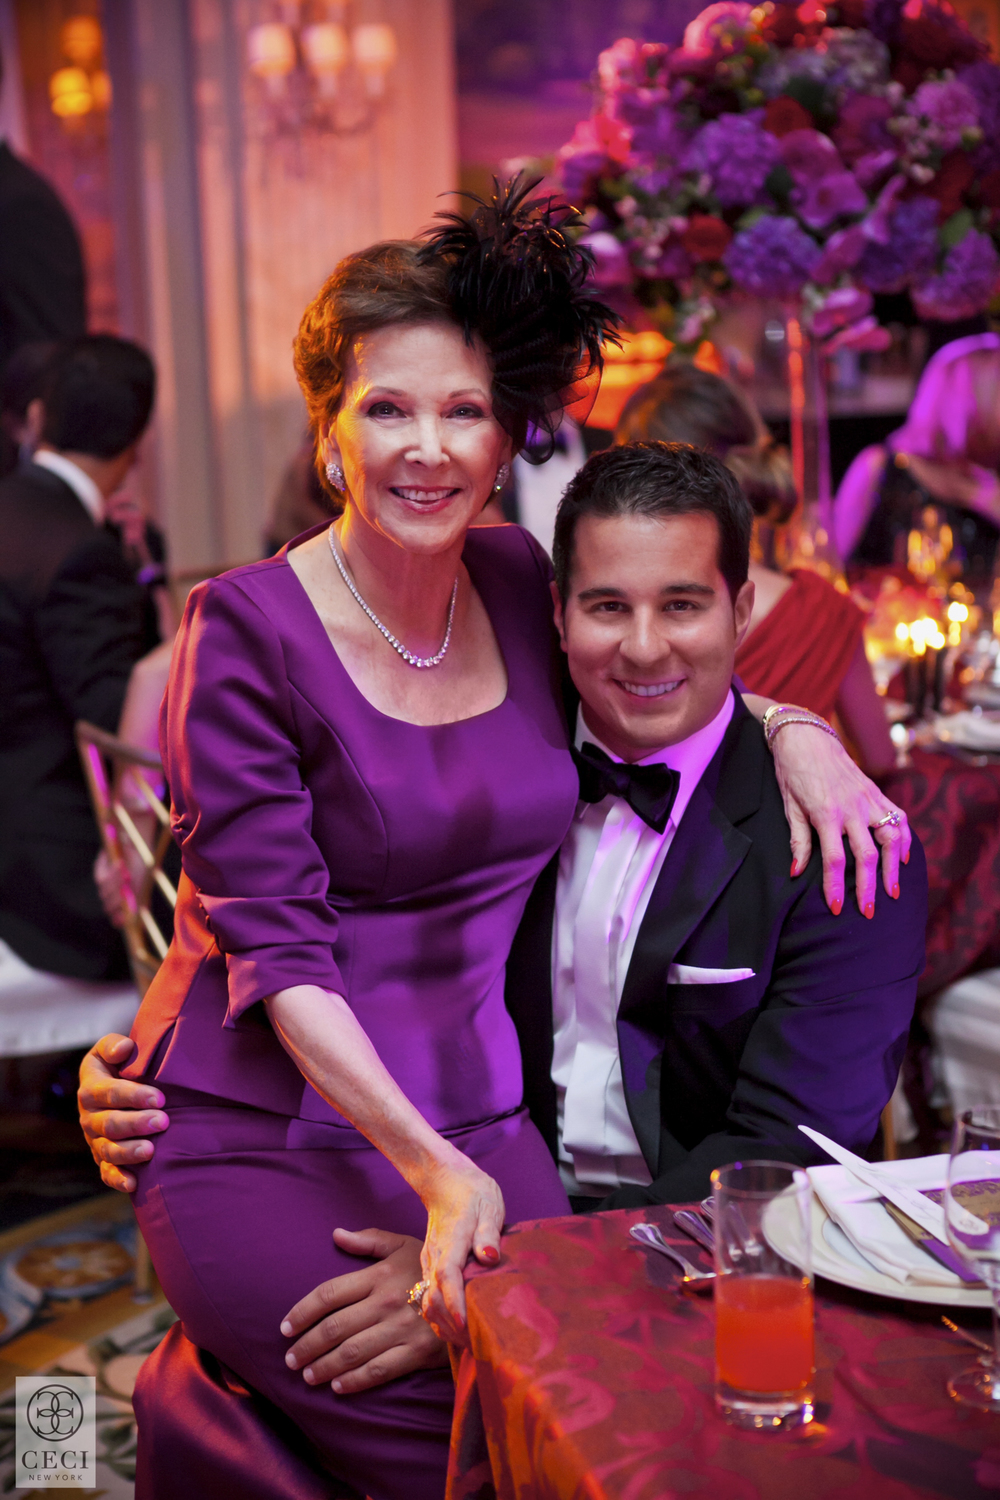 ceci_new_york_lucas_somoza_purple_regal_wediding_birthday_commitment_ceremony_gold-25.jpg